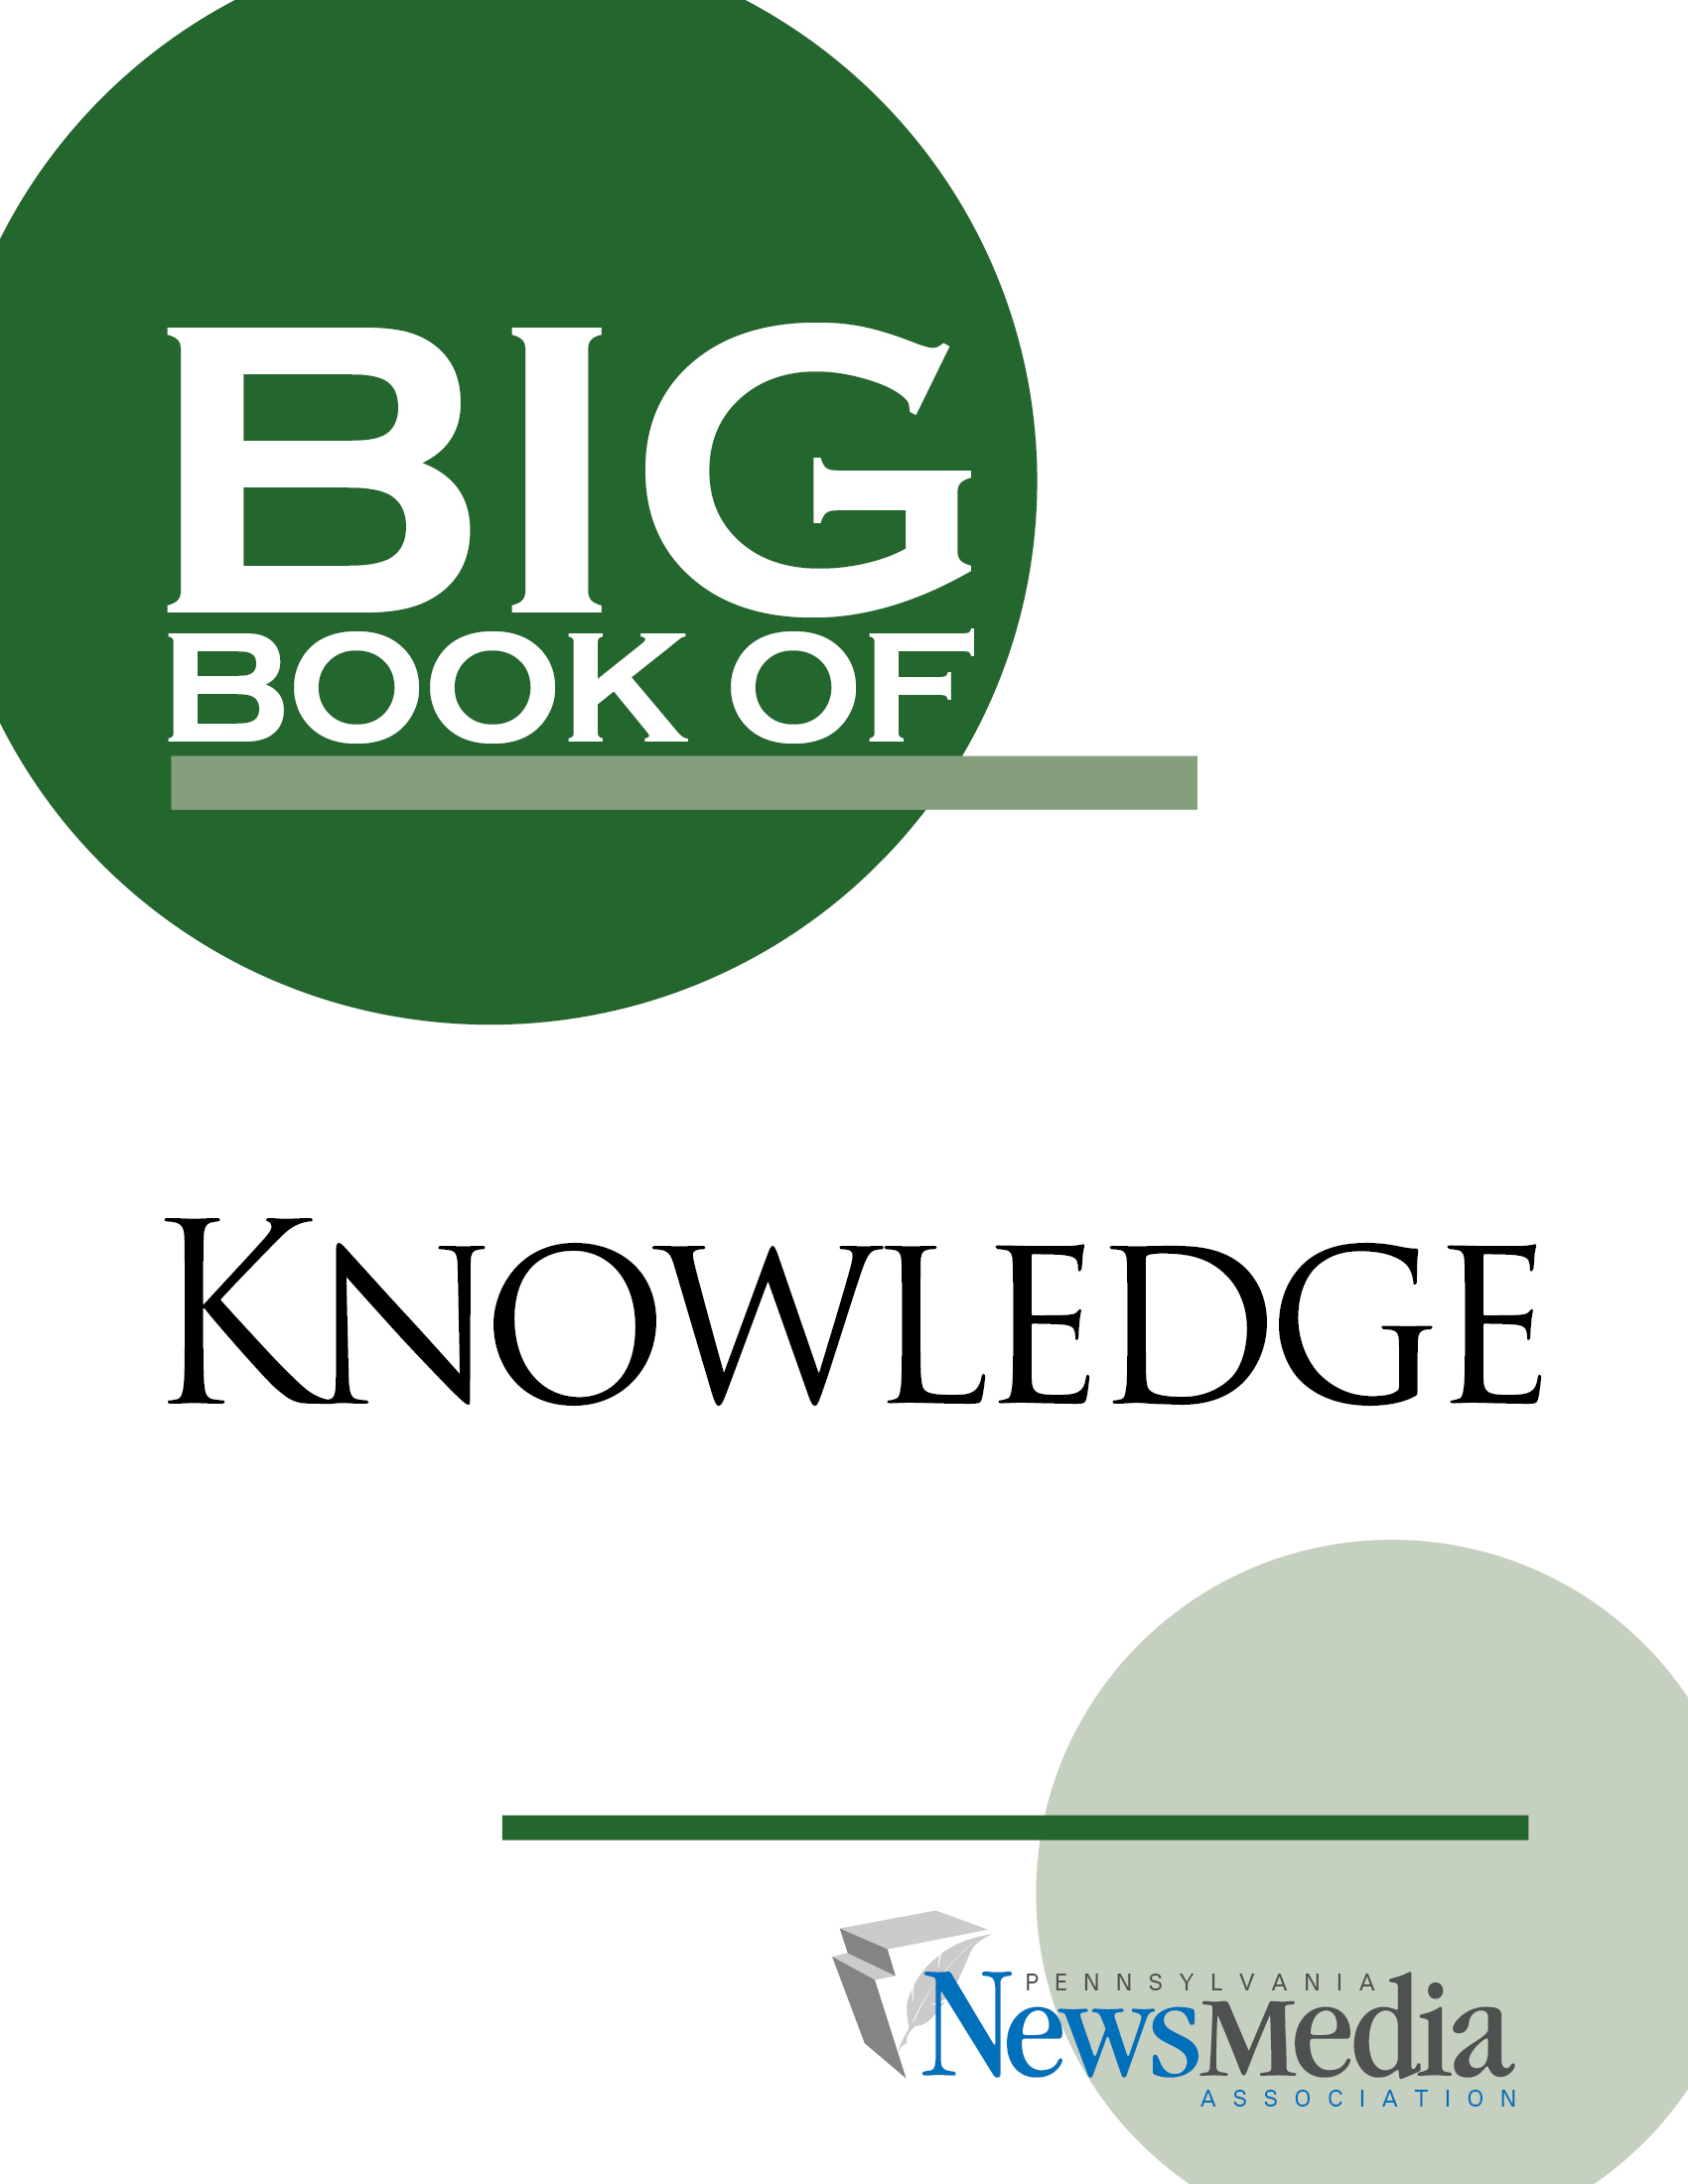 Big Book of Knowledge Cover - Helpful Guide for Newspapers in Pennsylvania